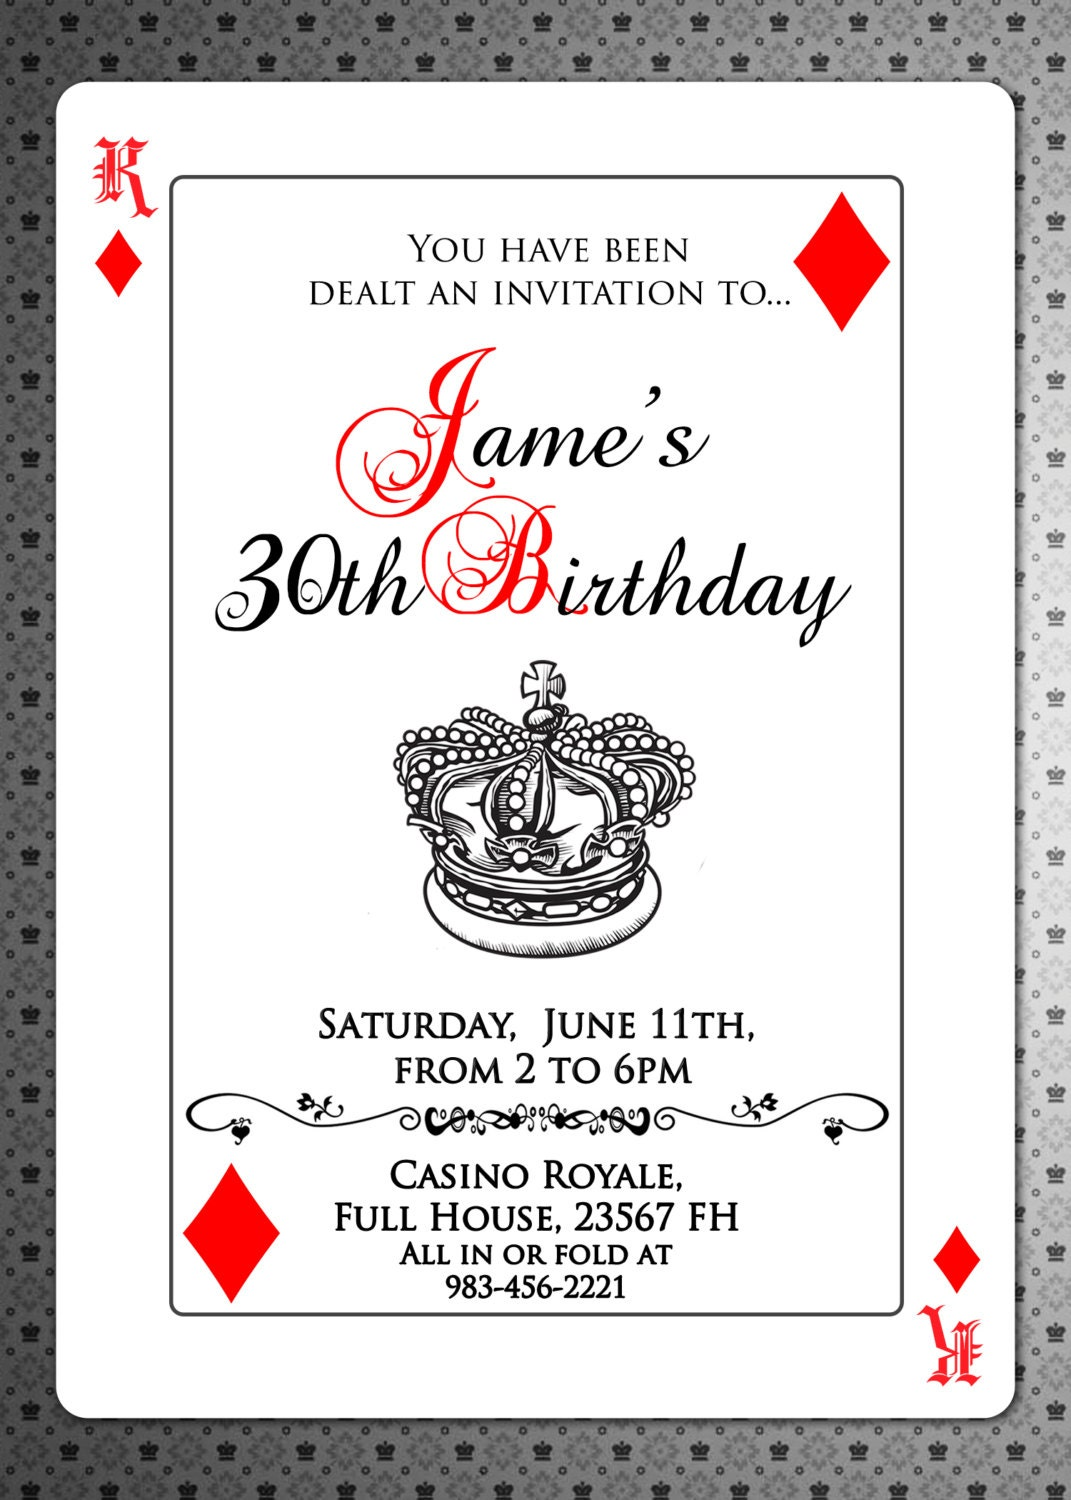 Playing Cards Invitation Poker Invite Royal Queen of hearts – Playing Card Invitation